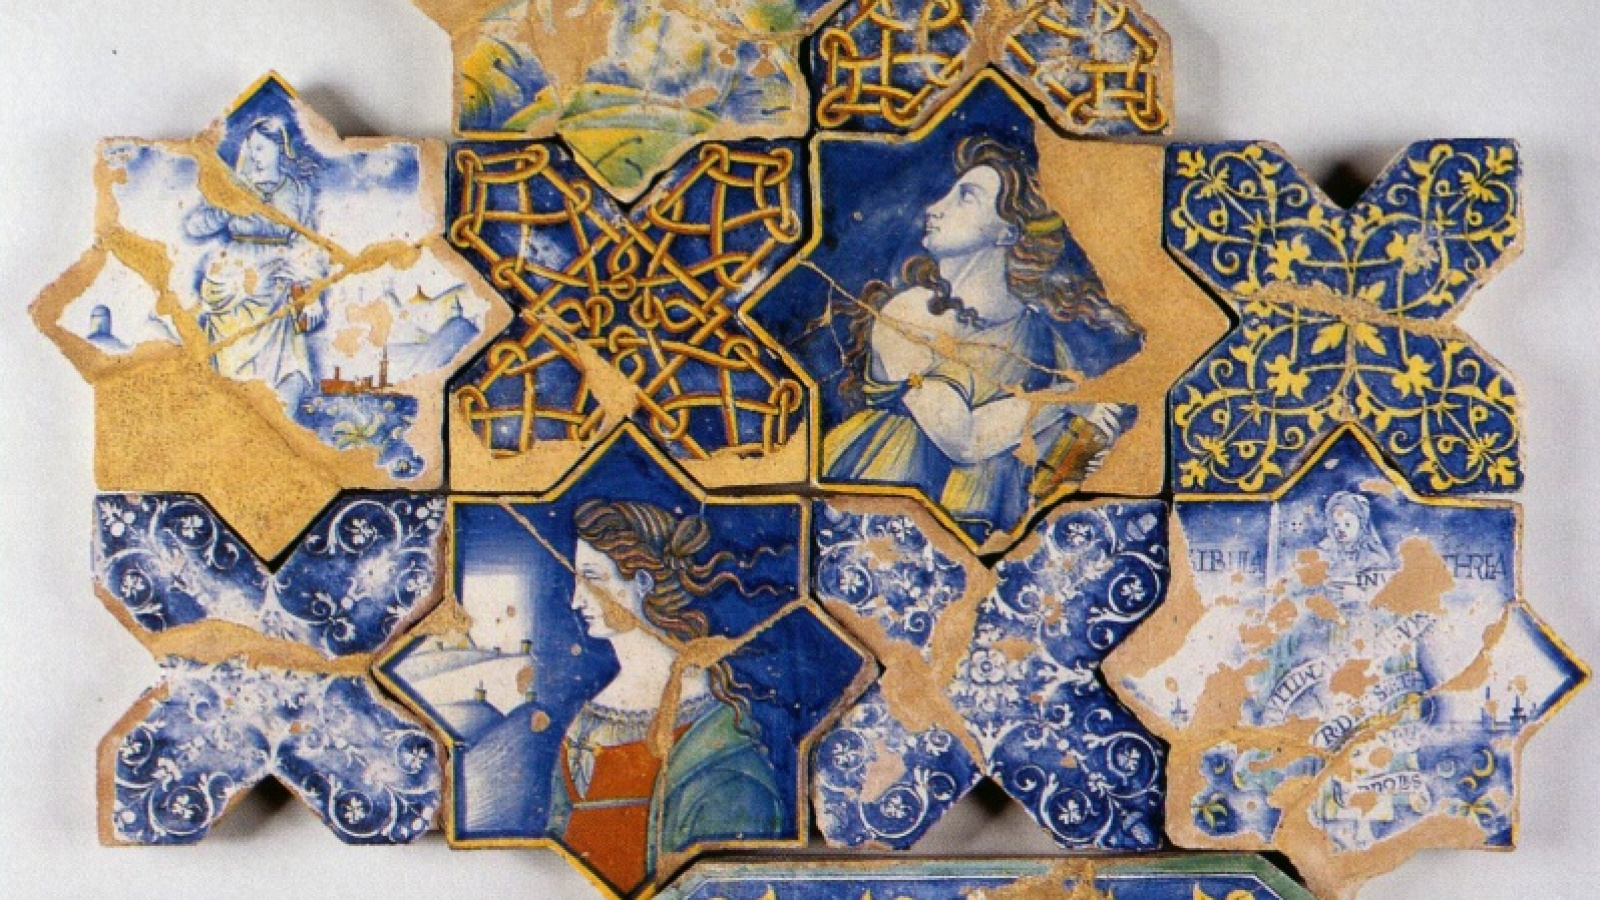 Regional Museum of Ceramics in Deruta Special Openings